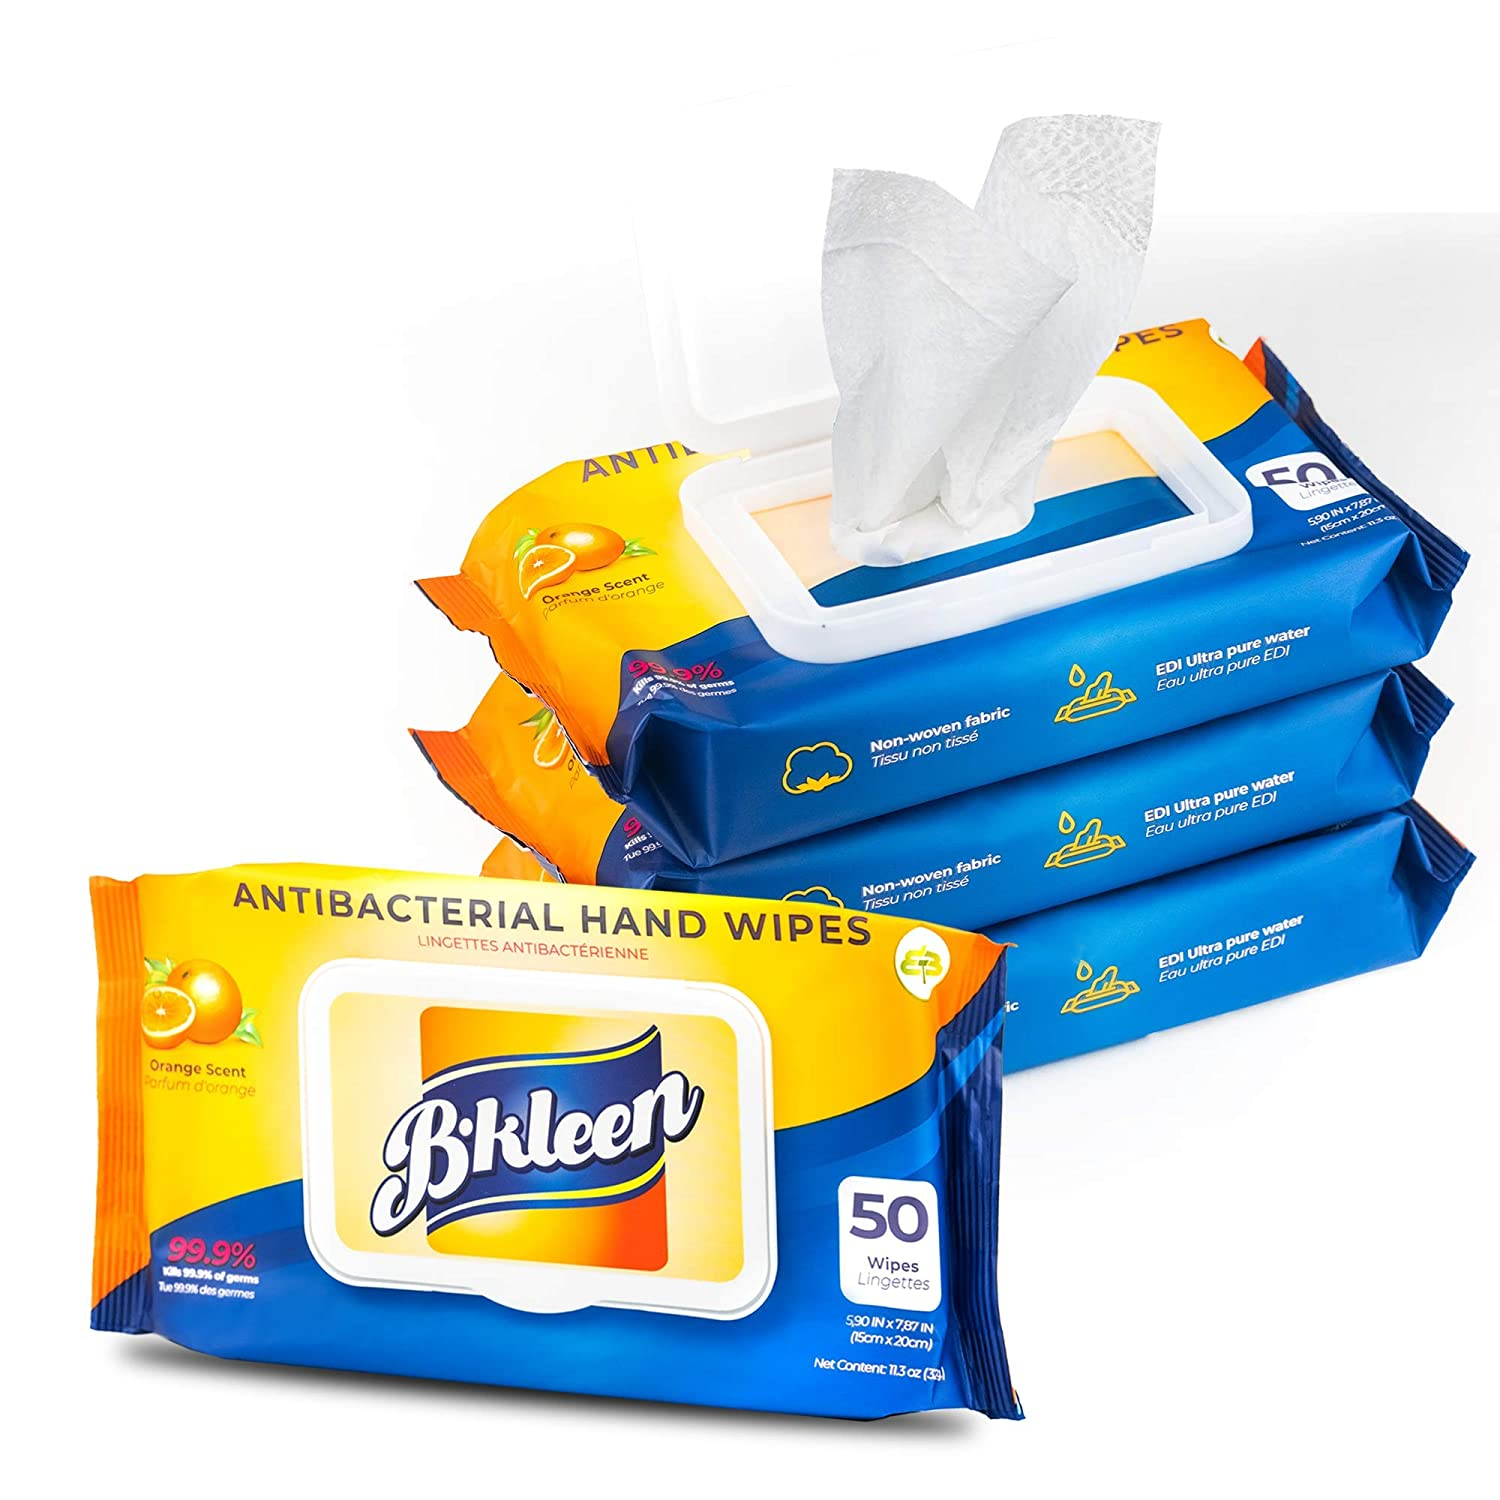 B.kleen Hand Wipes, Orange Scent, 4-Pack of 50 wipes (total 200 wipes) : Beauty